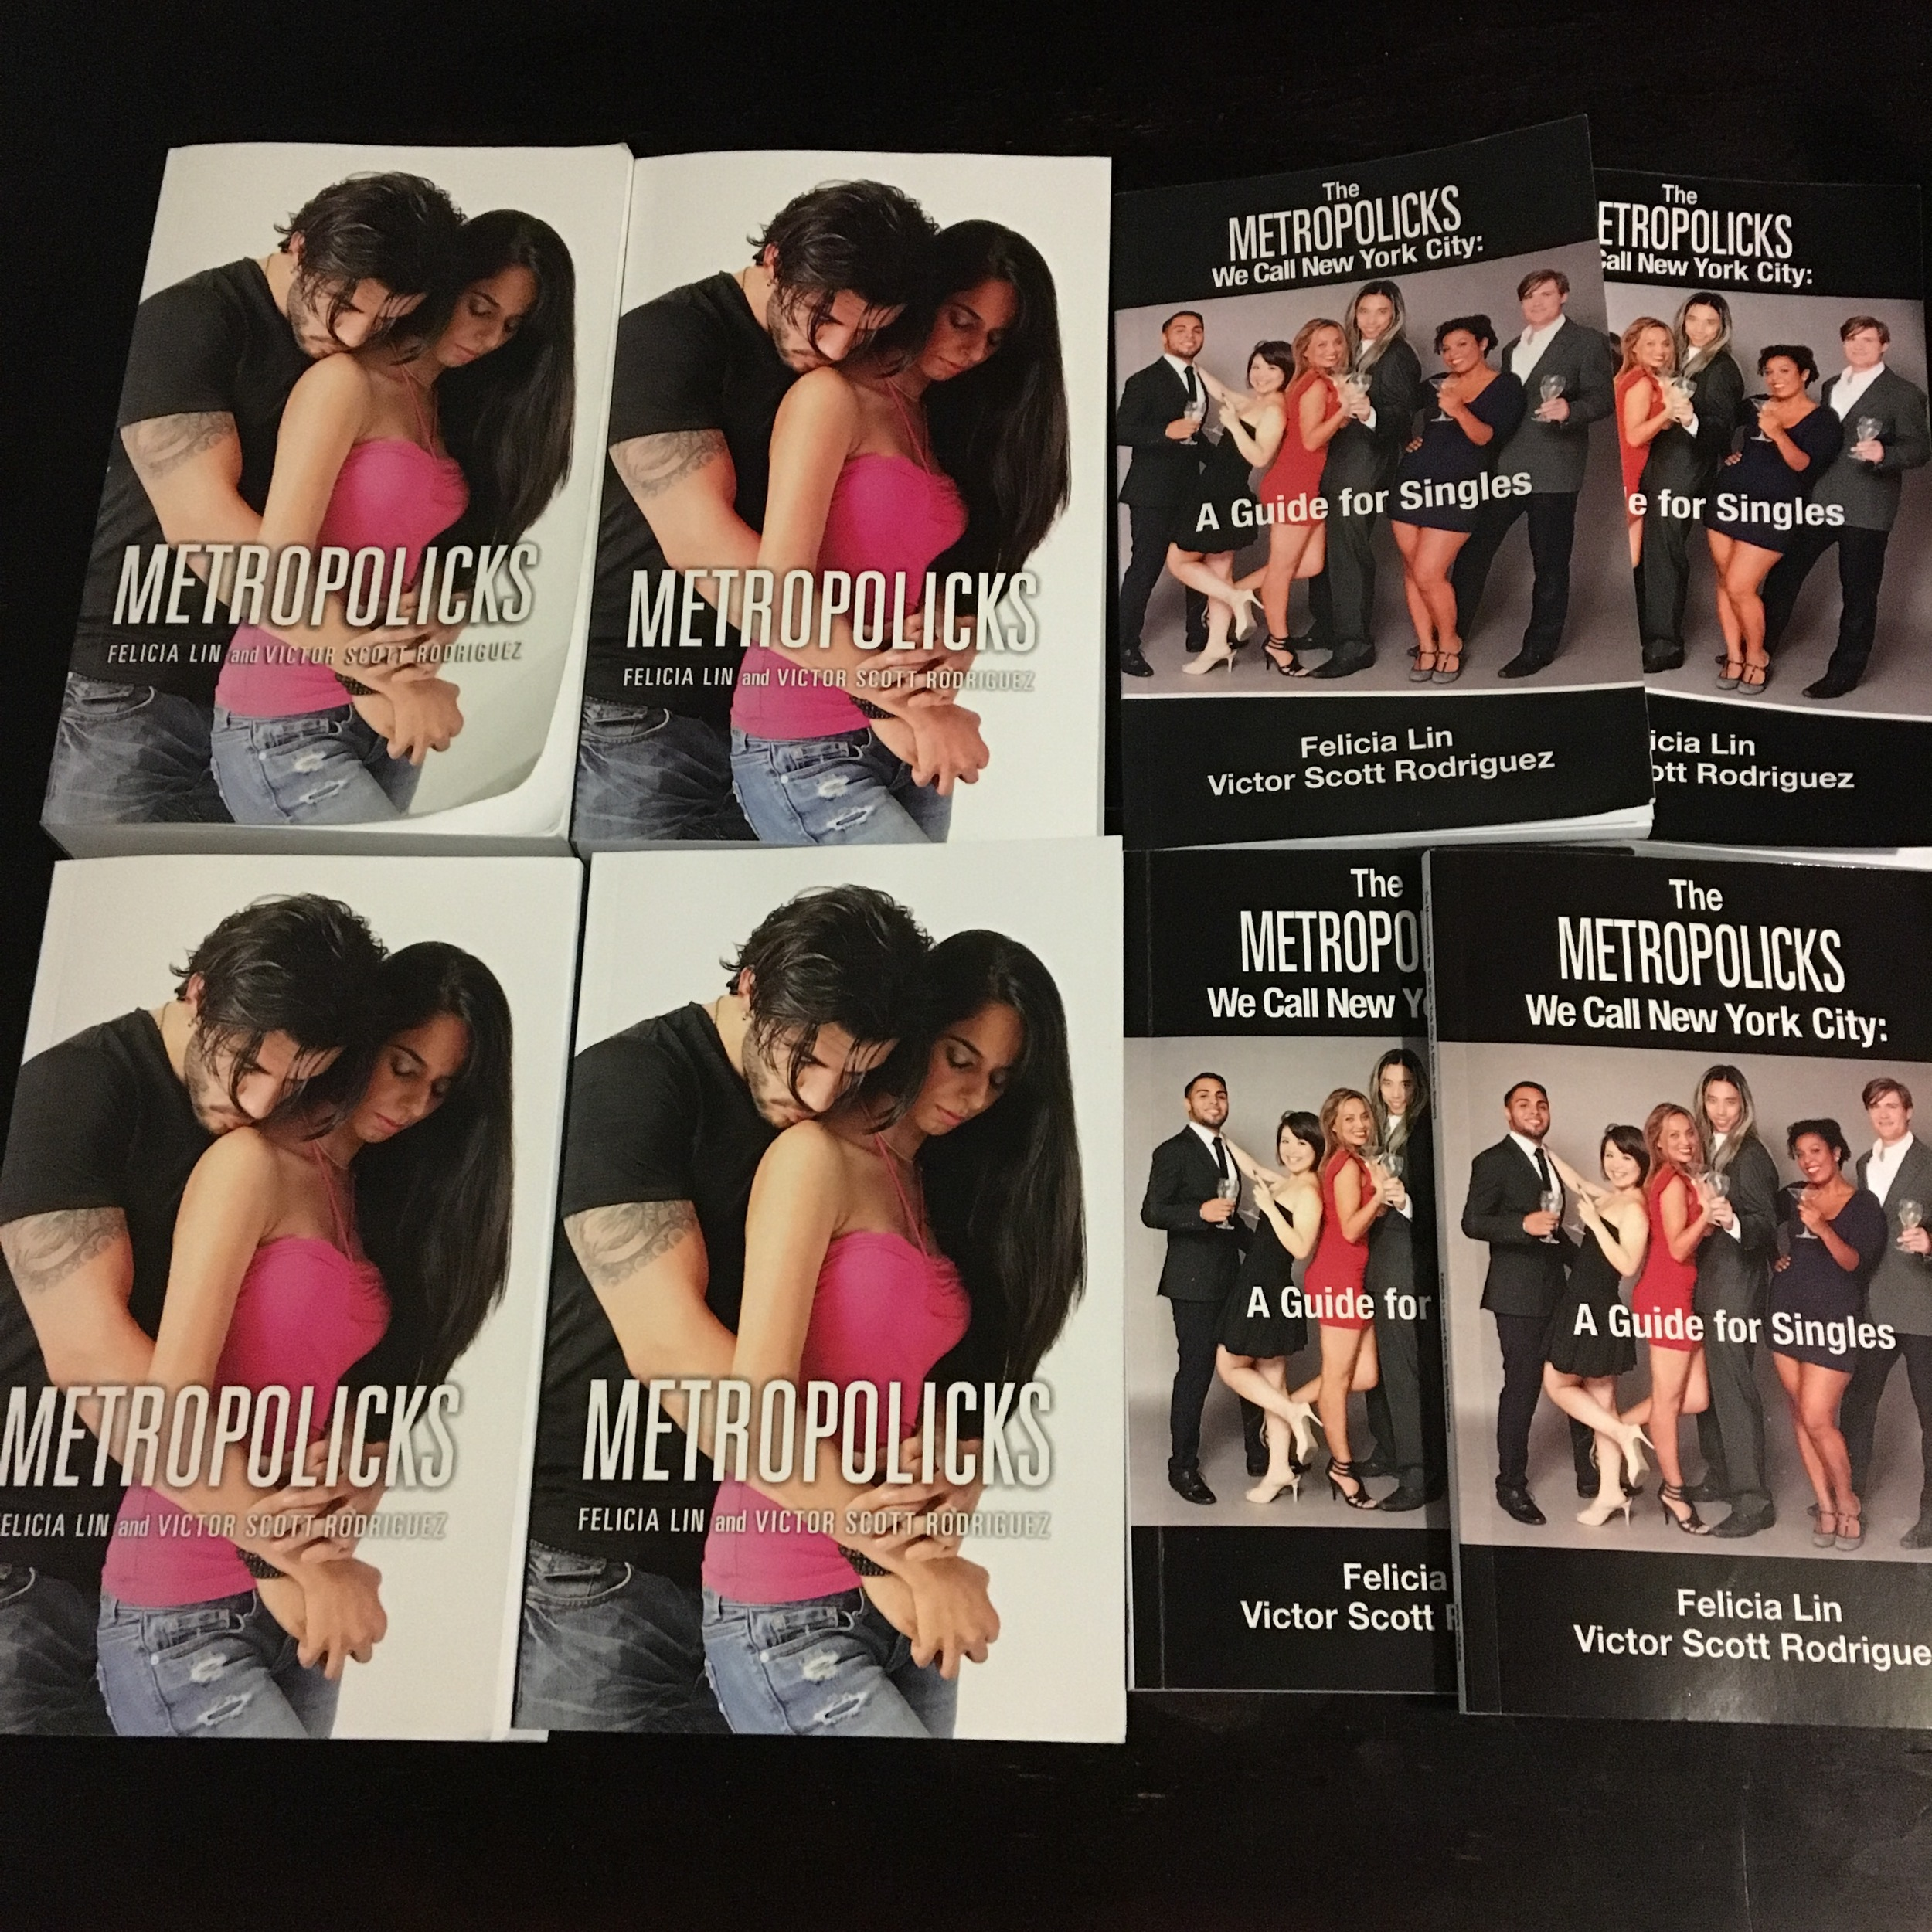 Just a few of the print proof copies of  Metropolicks  and  Metropolicks We Call New York City: A Guide for Singles that we've ordered and proofed before the books hit the presses.